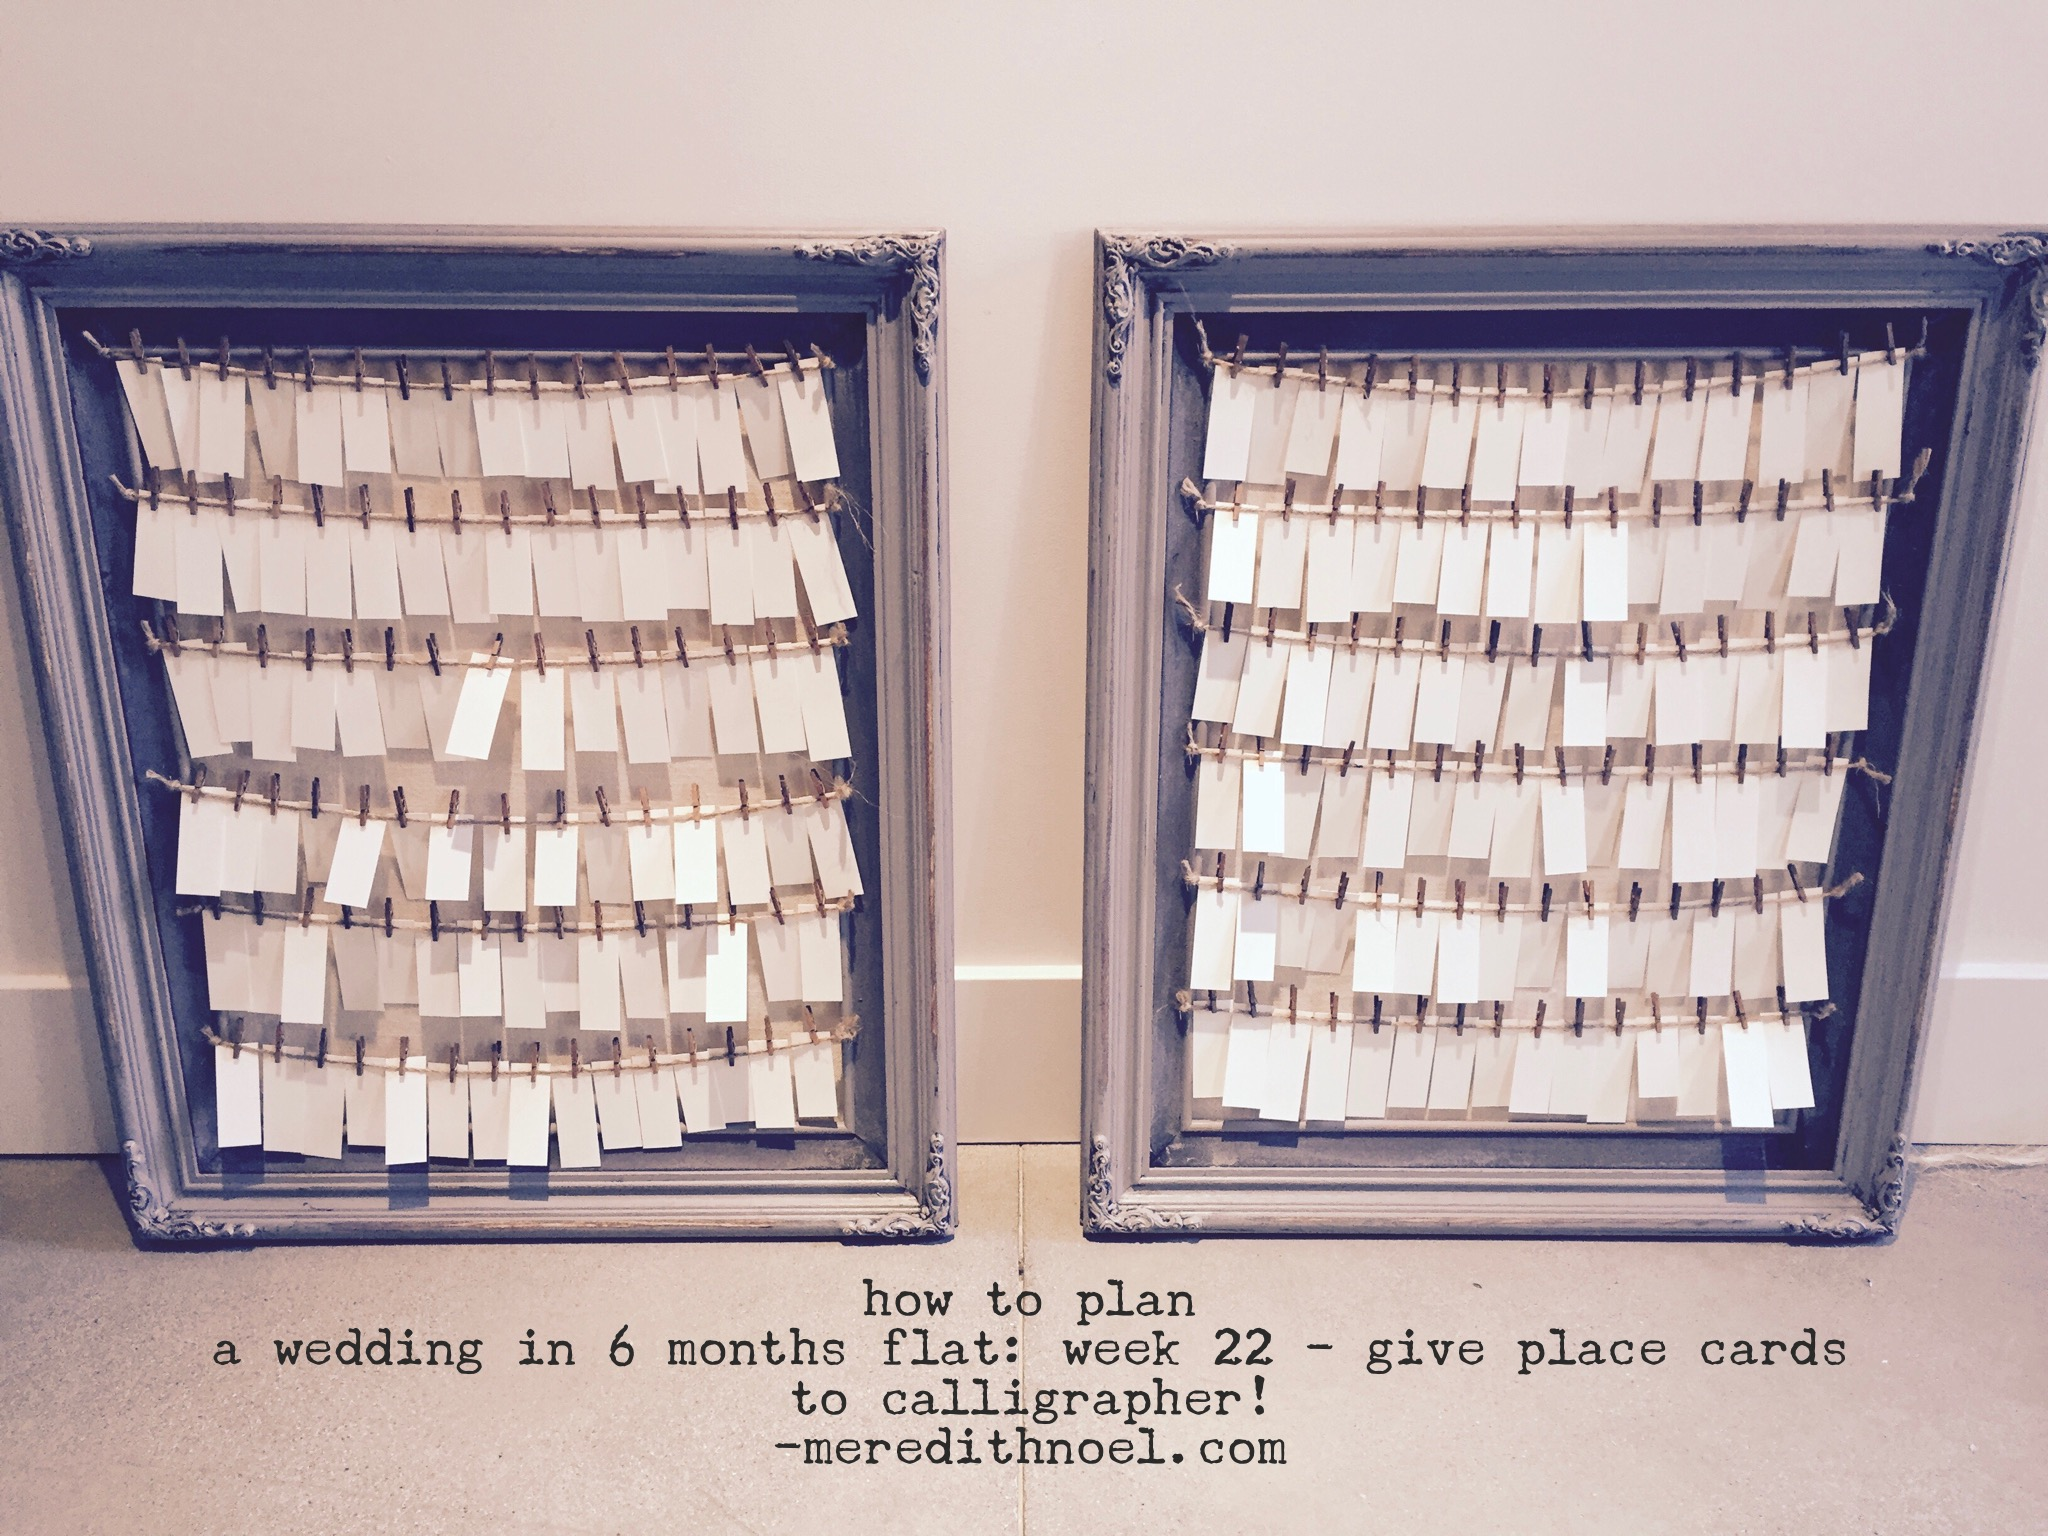 Ask Lh How Much Booze Do I Need For My Wedding: How To Plan A Wedding In 6 Months Flat: Week 22